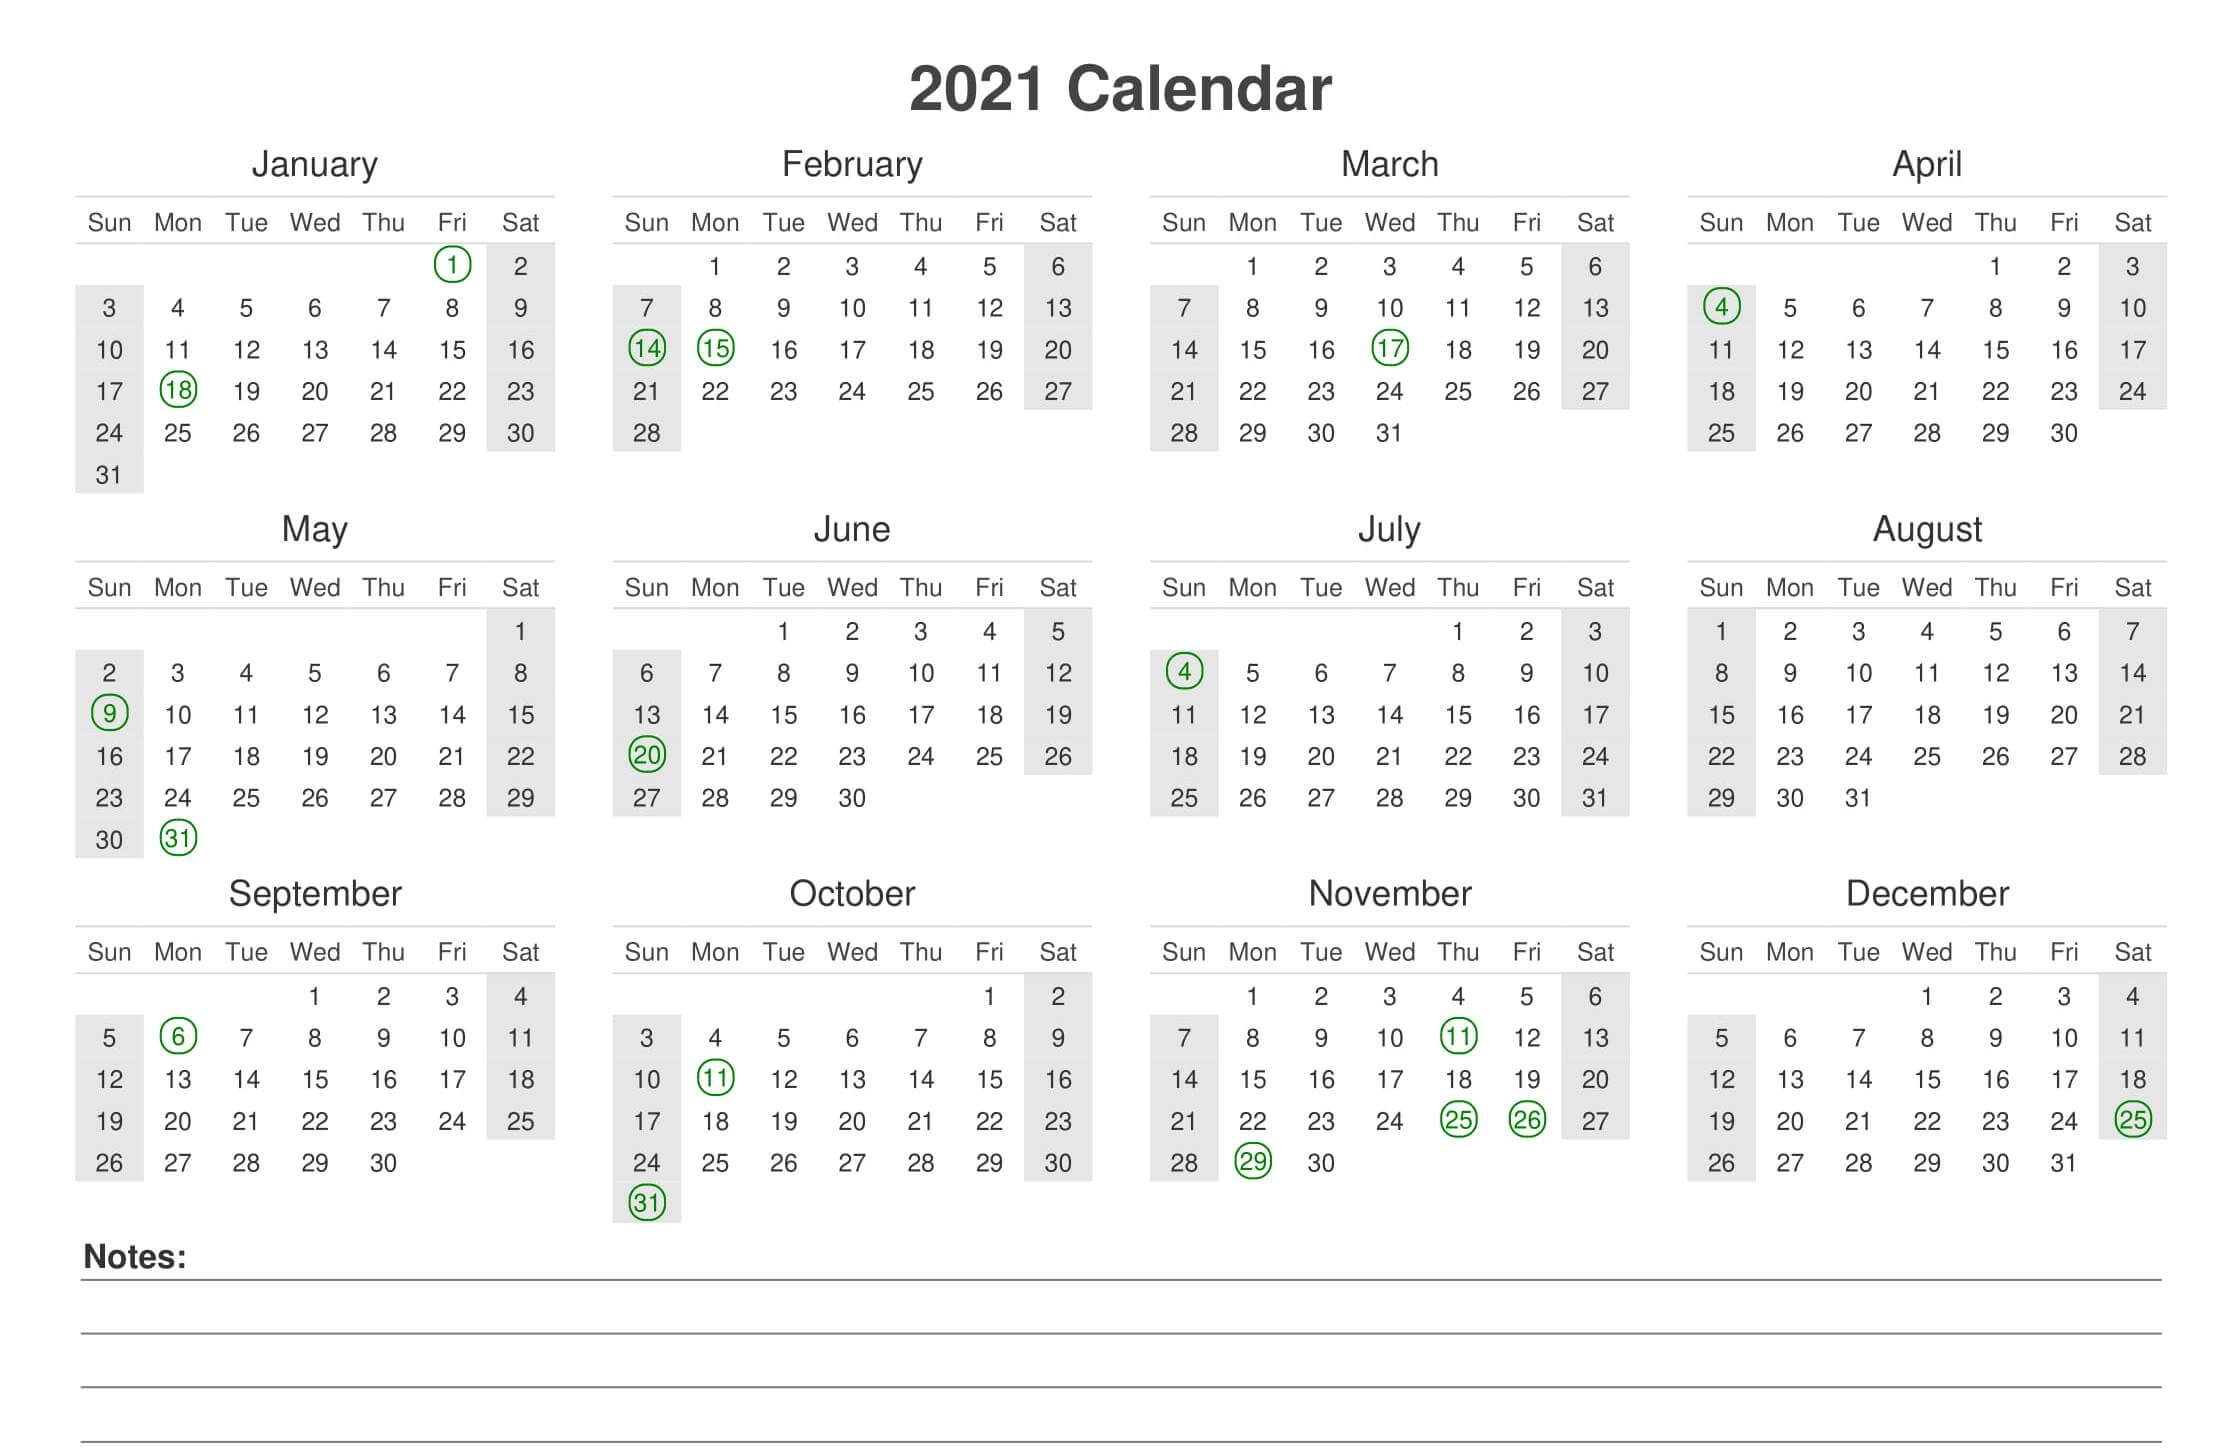 Yearly 2021 Calendar With Notes